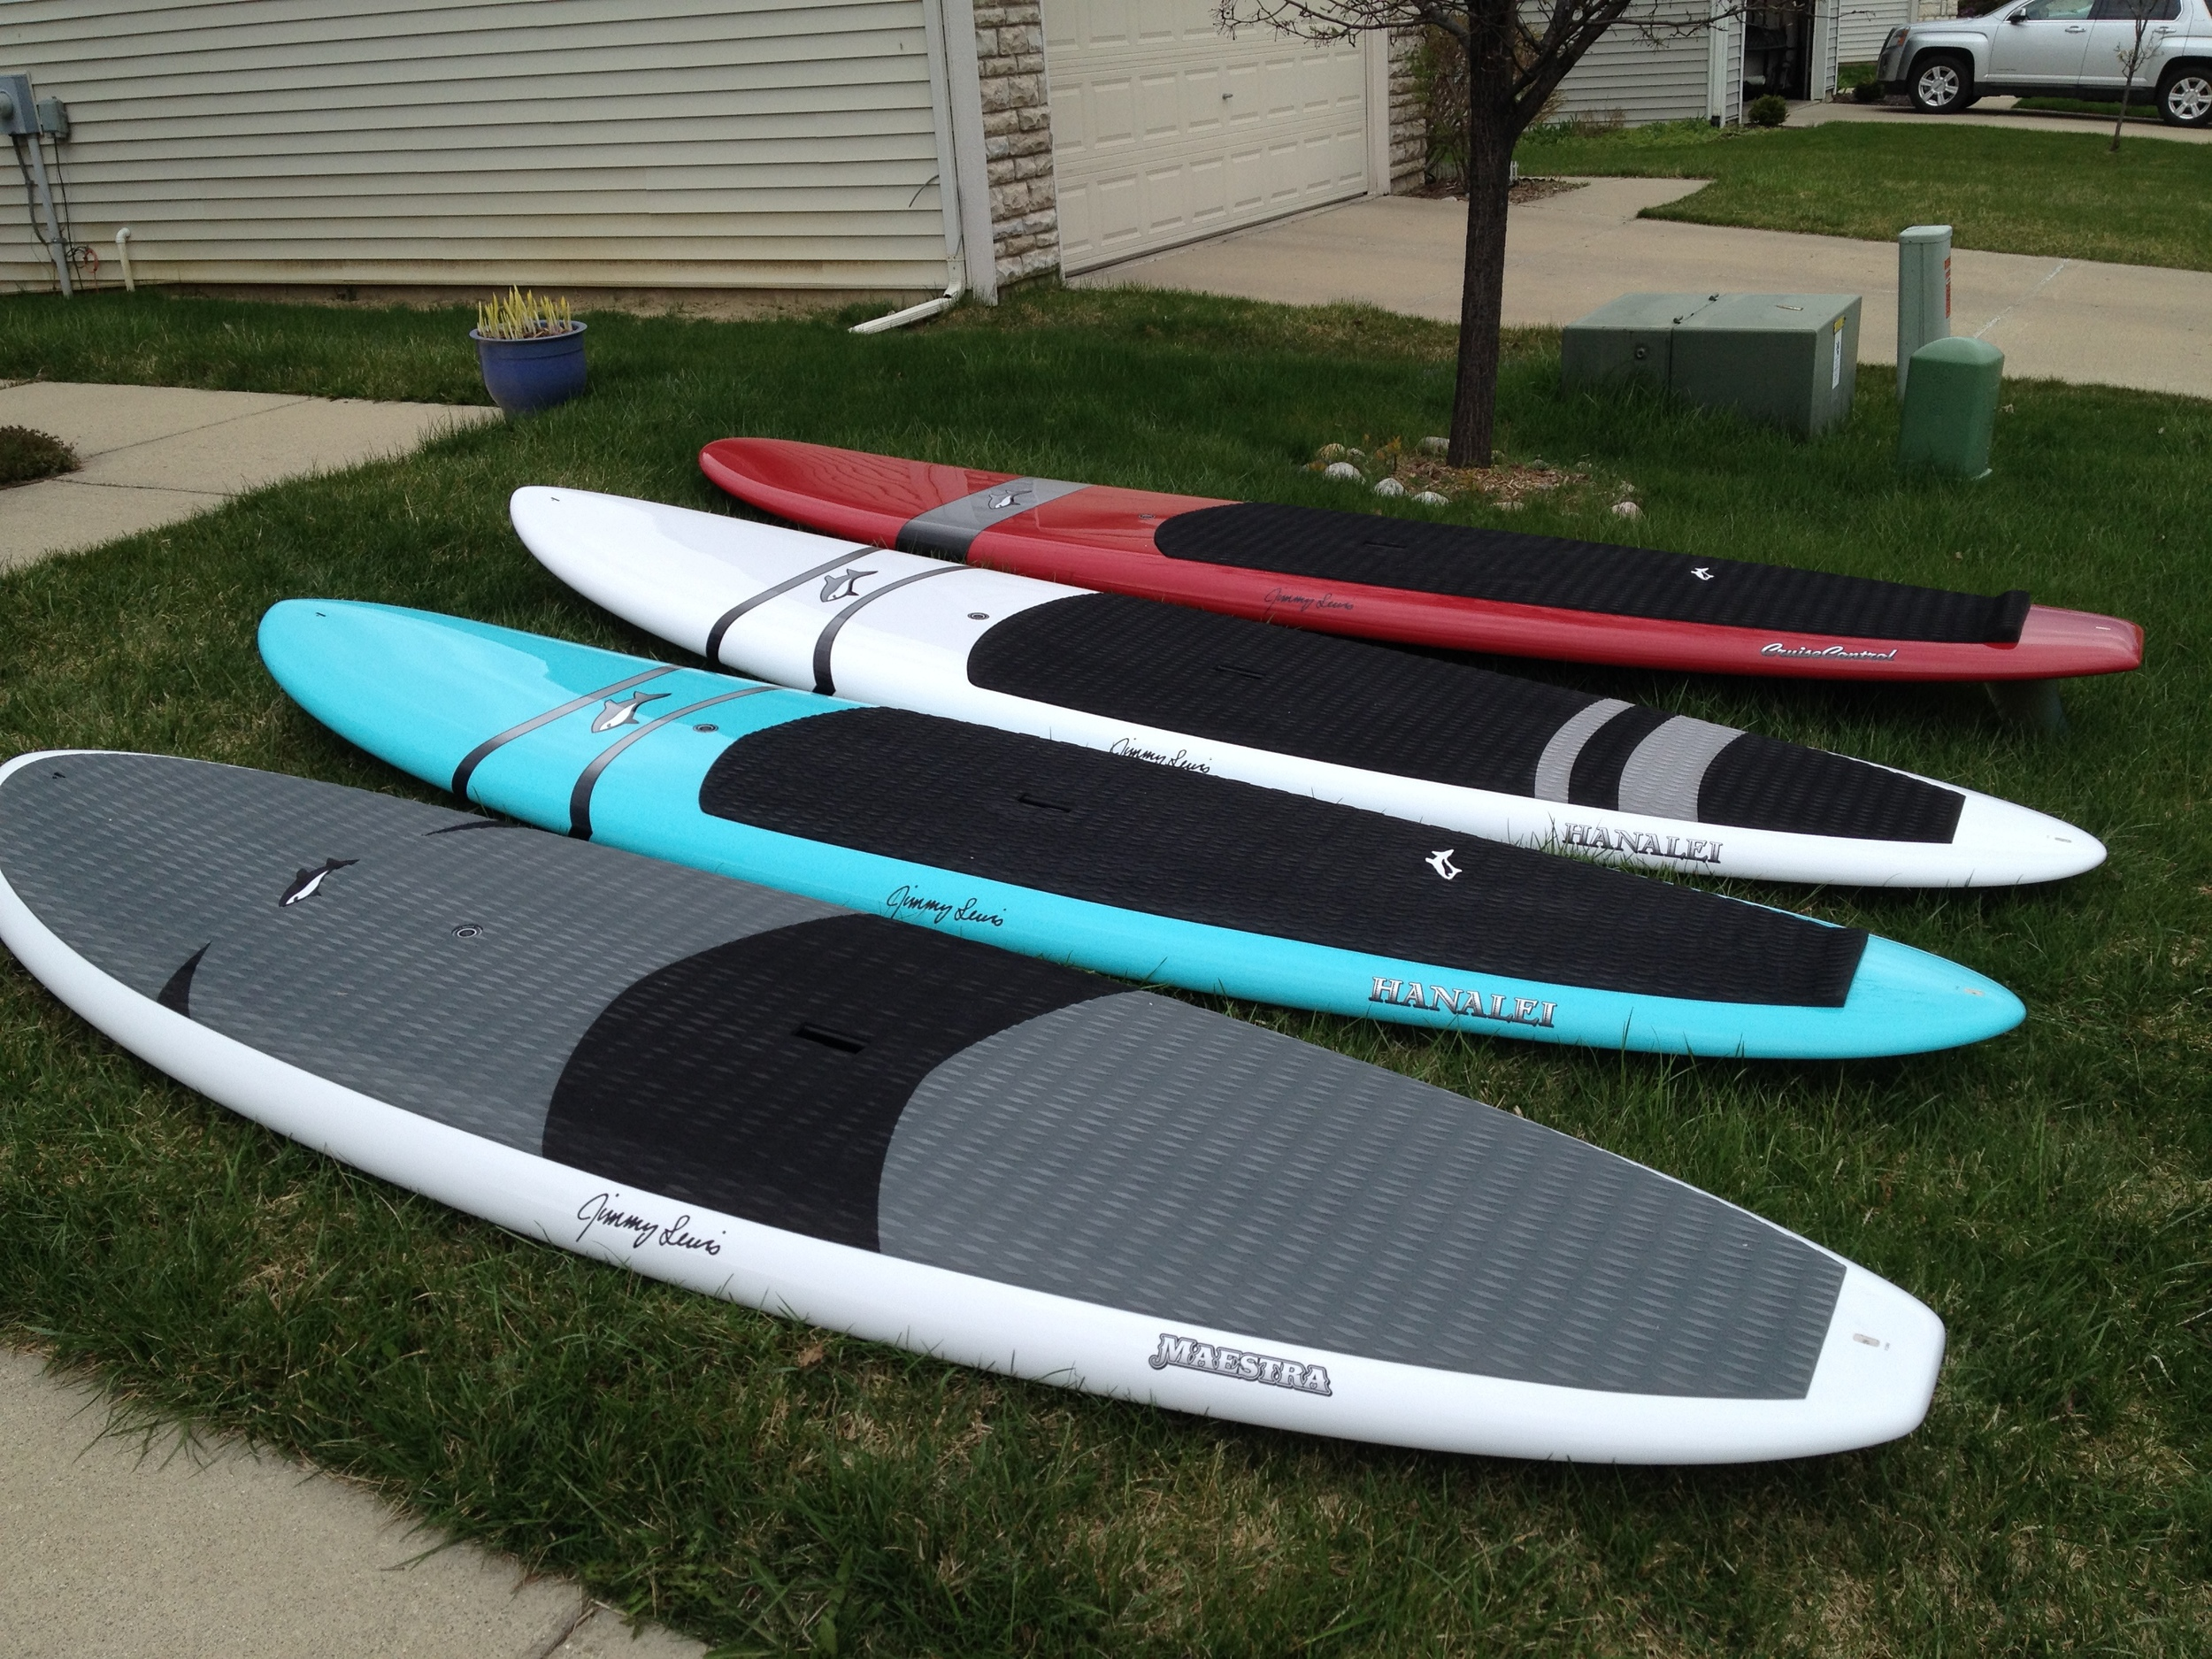 2015 Treetown Jimmy Lewis quiver.